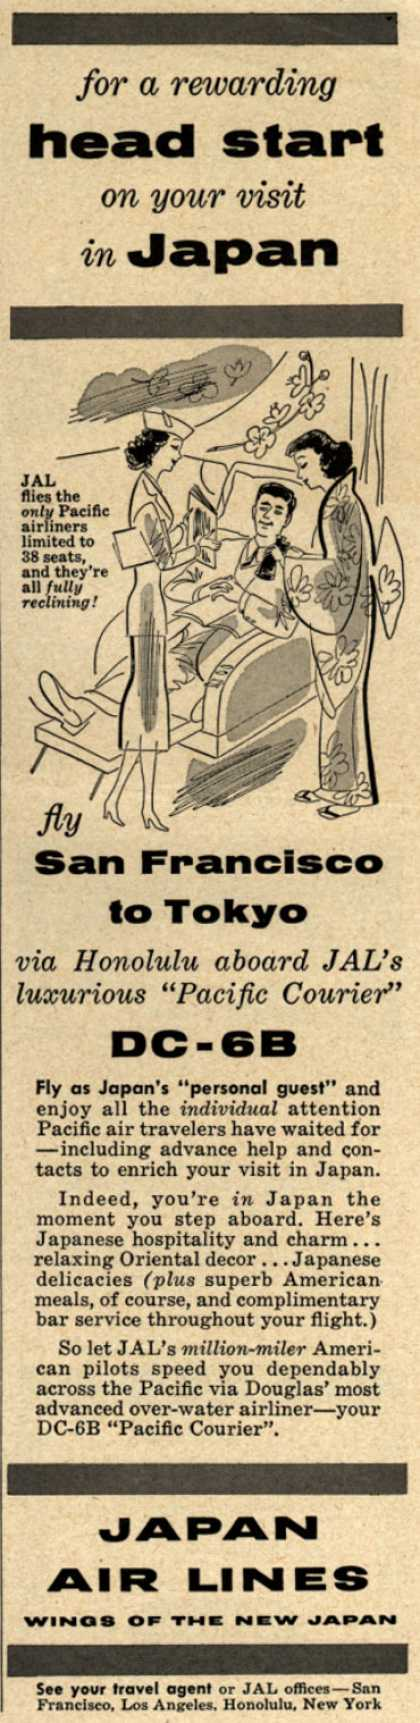 Japan Air Line's San Francisco to Tokyo – For a rewarding head start on your visit in Japan (1954)